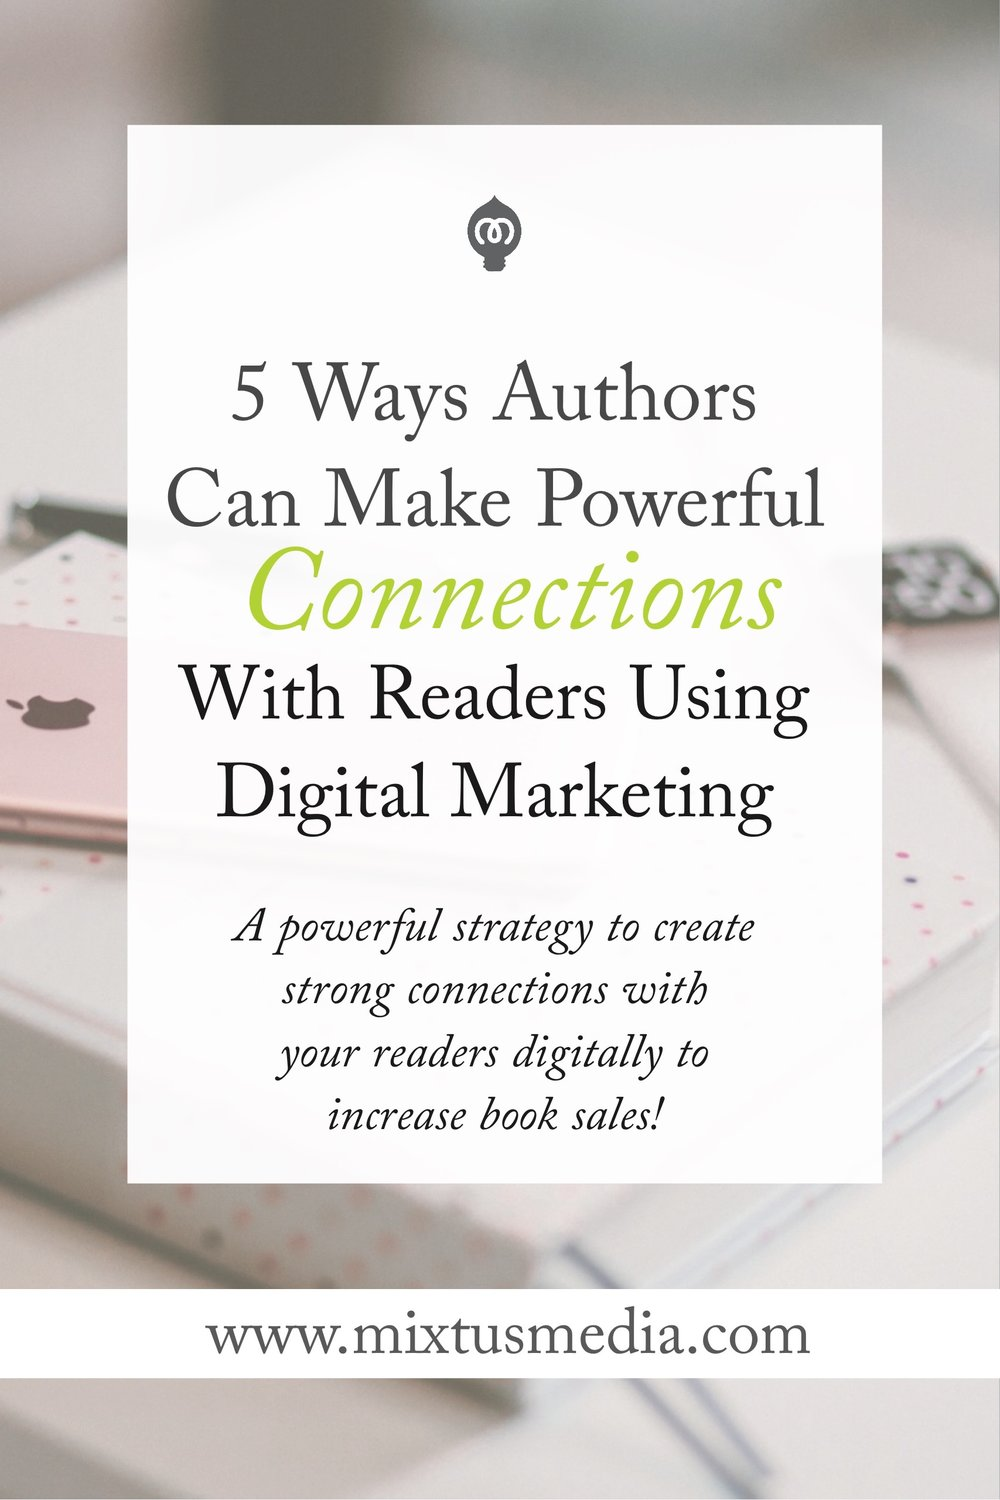 A powerful strategy to create strong connections with your readers digitally to increase book sales!